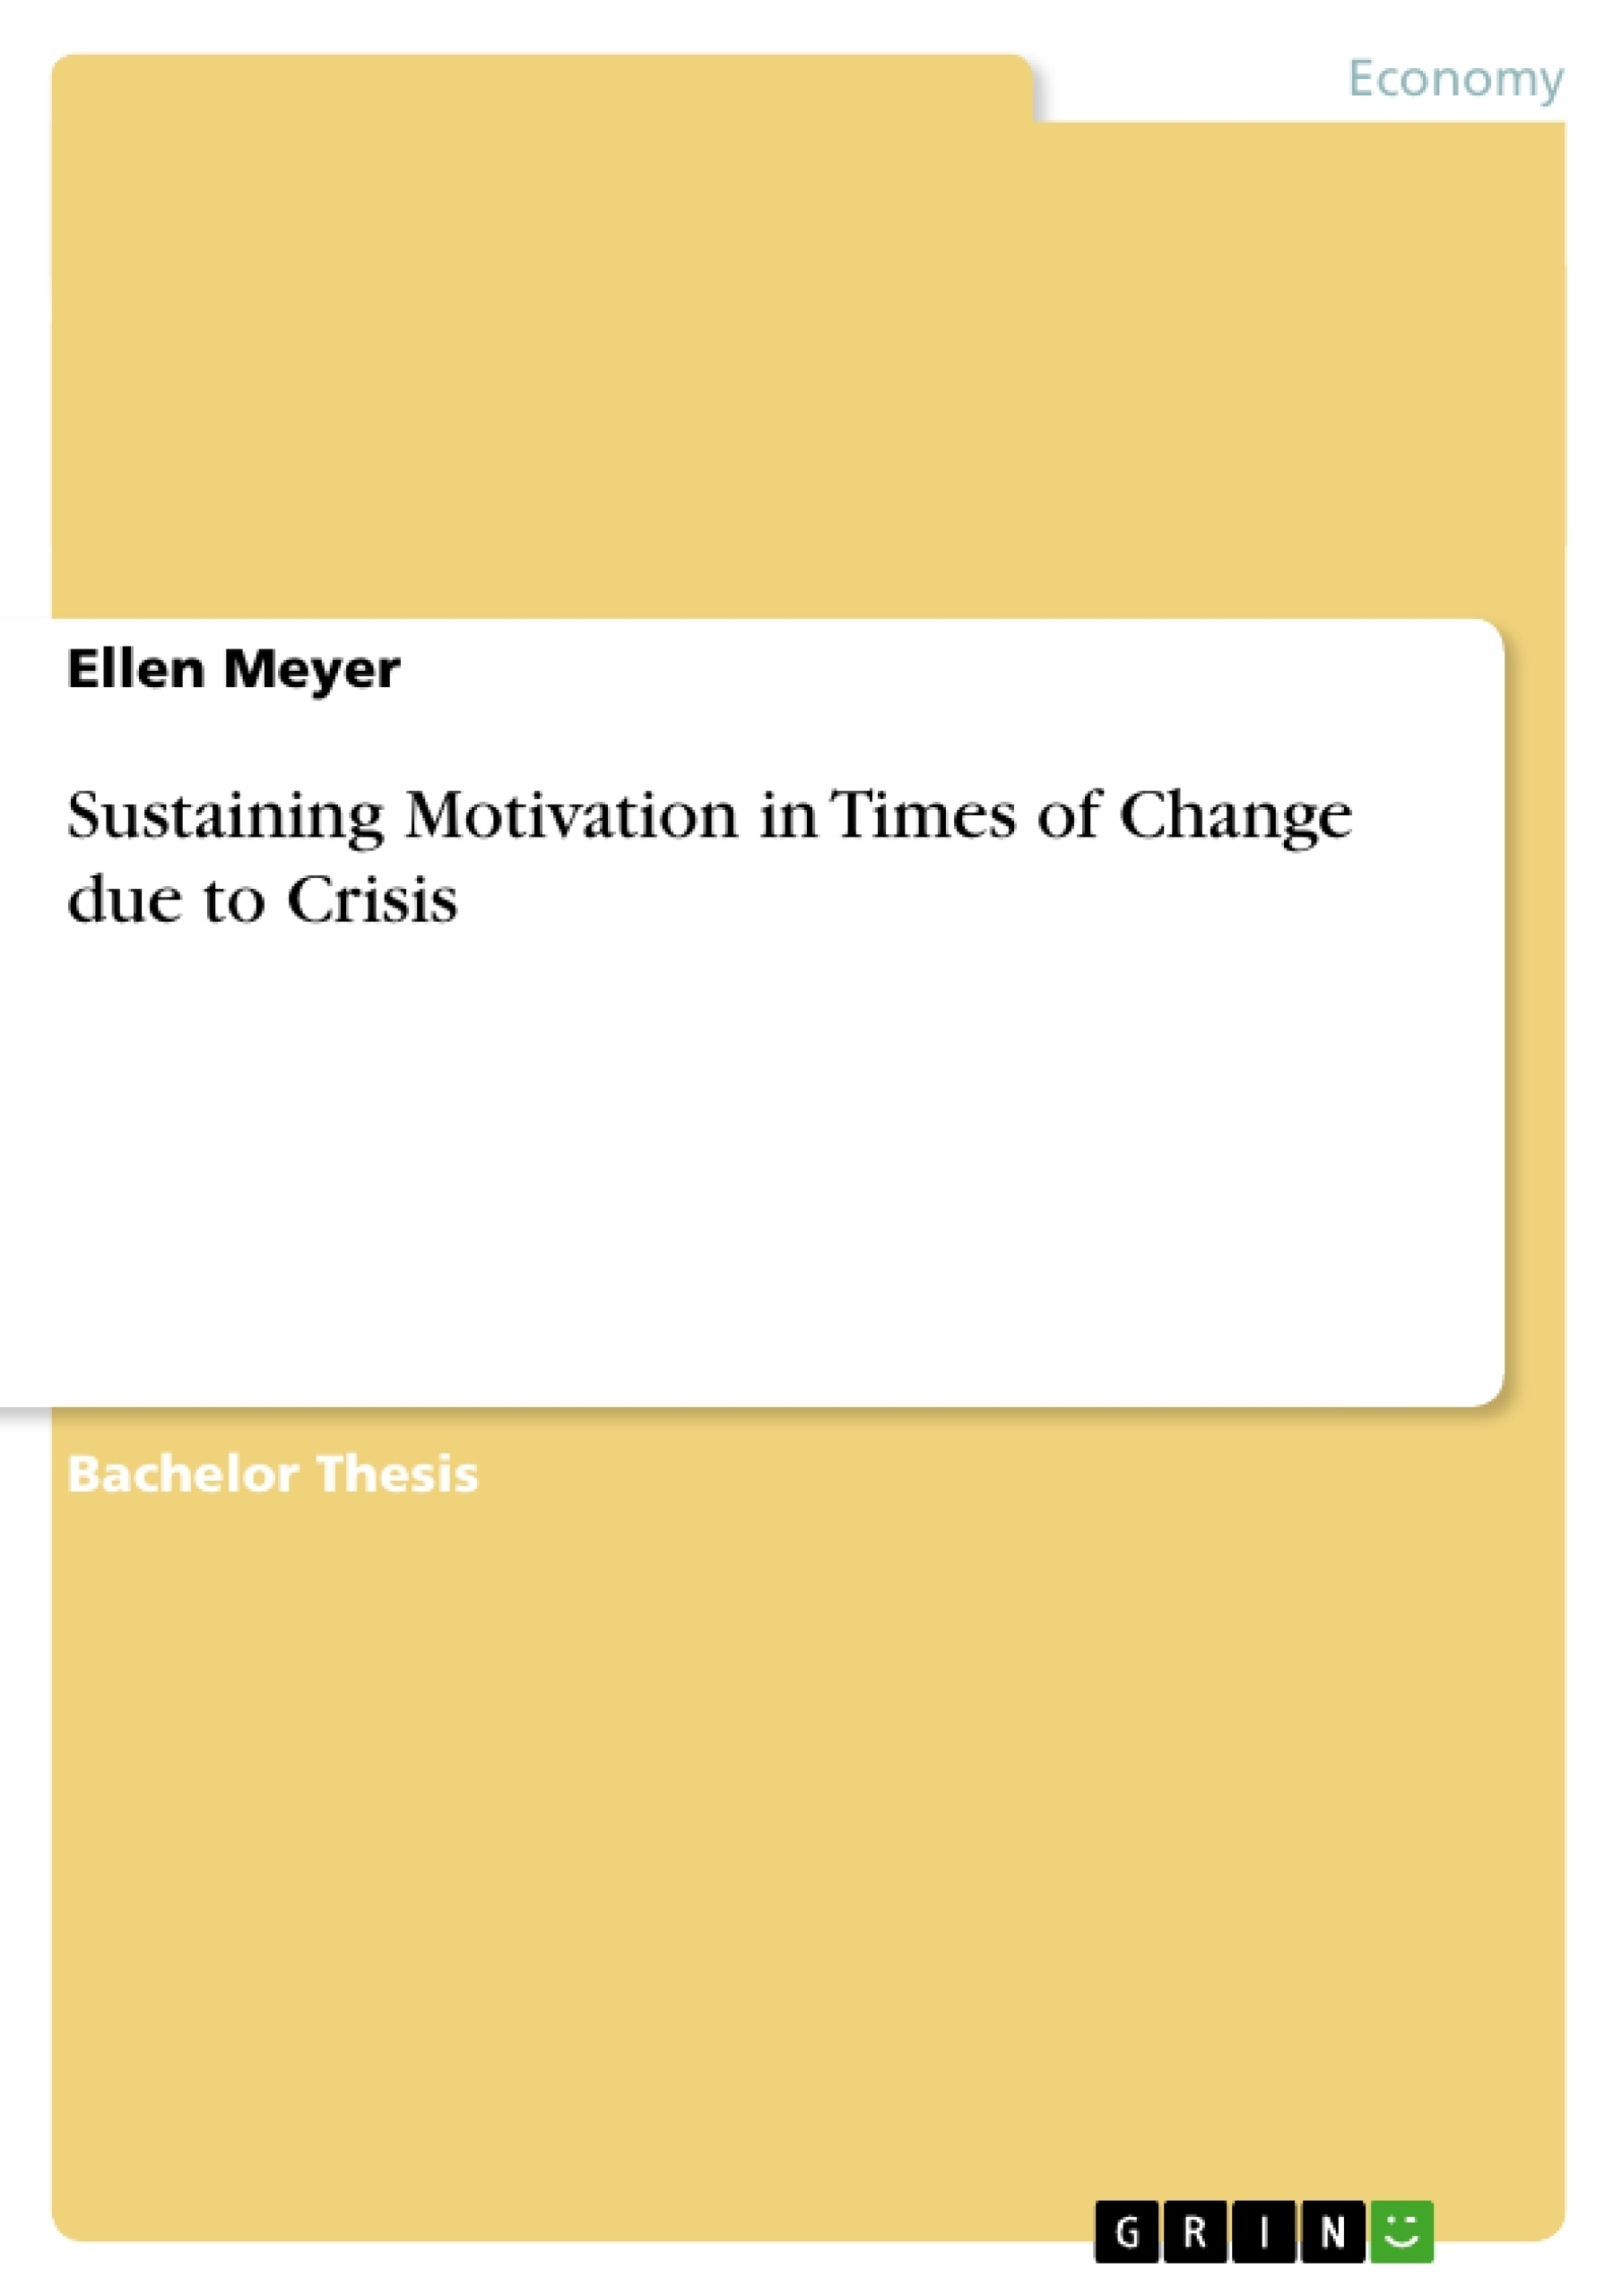 Title: Sustaining Motivation in Times of Change due to Crisis